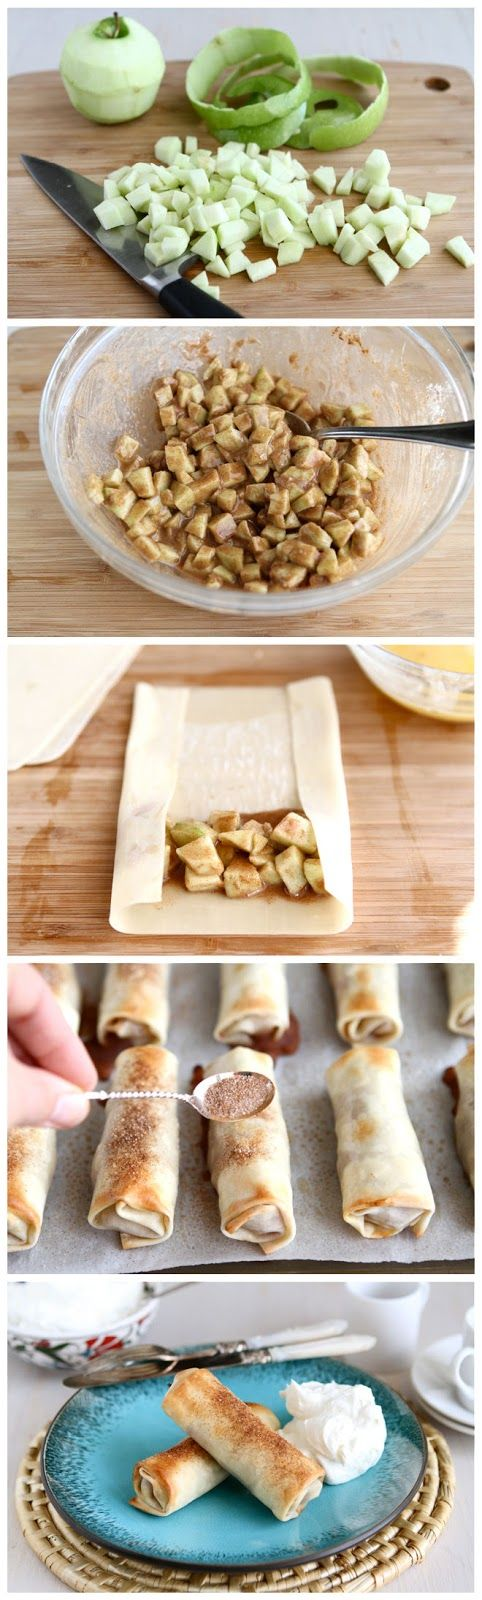 kiss recipe: Baked Apple Pie Egg Rolls